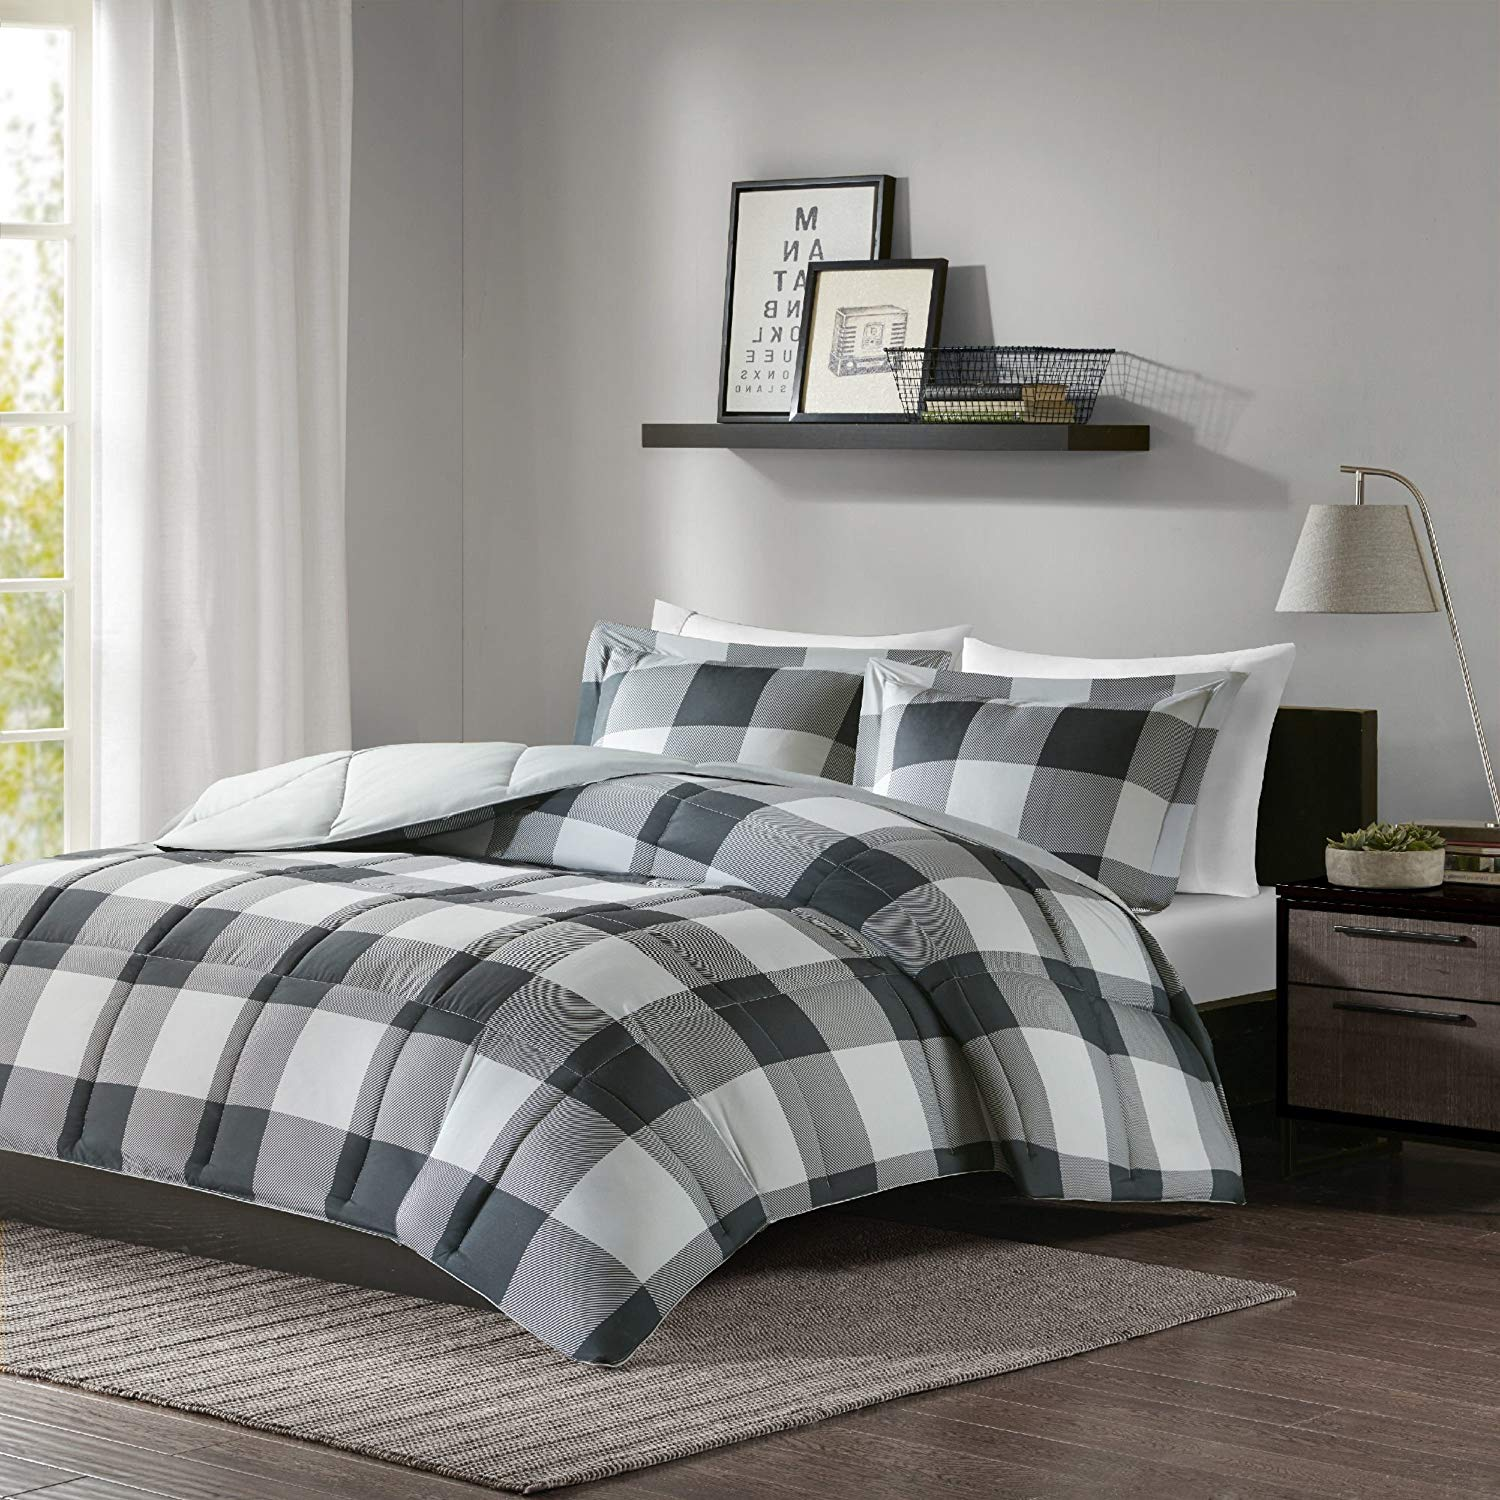 MPN 3 Piece Black Grey Plaid Comforter Full Queen Set, Gray Cabin Themed Bedding Lumberjack Pattern Squares Lodge Rustic Cottage Tartan Checkered Checked Lightweight, Microfiber